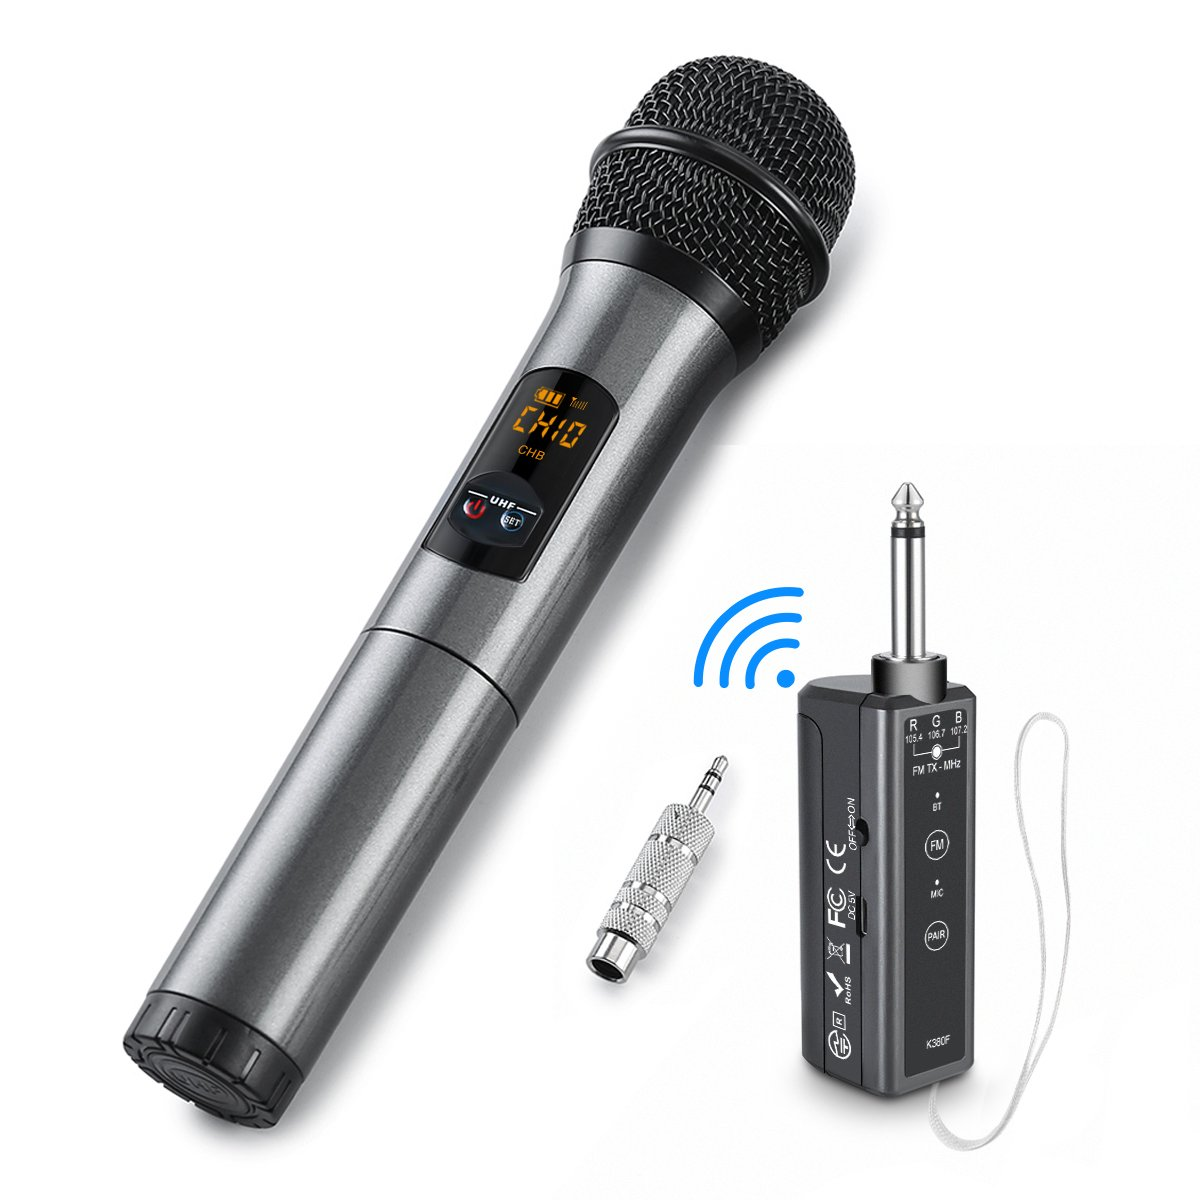 UHF Bluetooth Wireless Microphone, ELEGIANT Handheld Dynamic Microphone Wireless Mic System Karaoke FM Receiver Professional Singing Machine for Home Party Speech Stage Show Church Wedding -K380